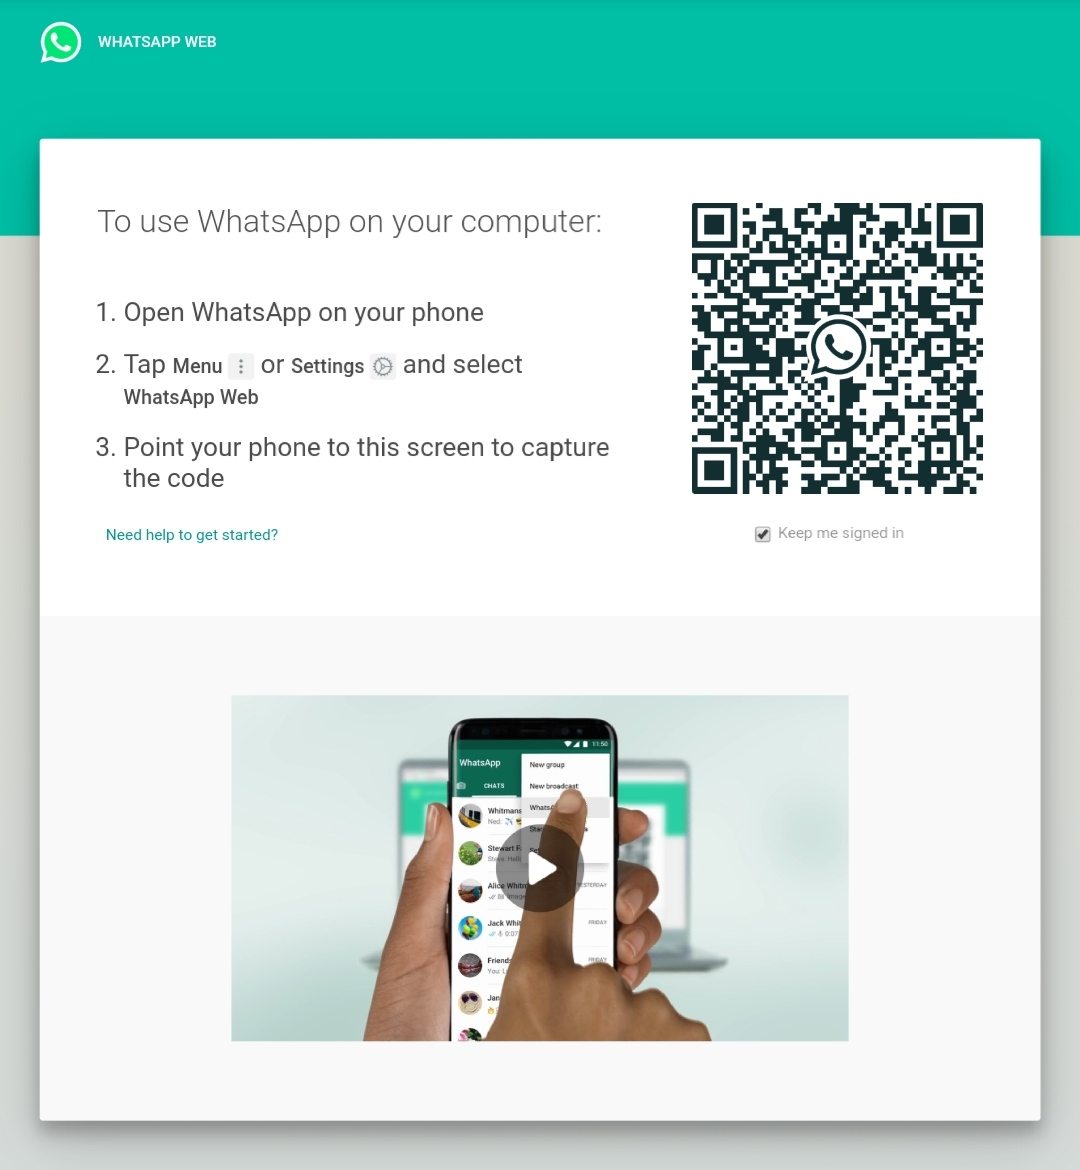 WhatsApp Web – web.whatsapp.com